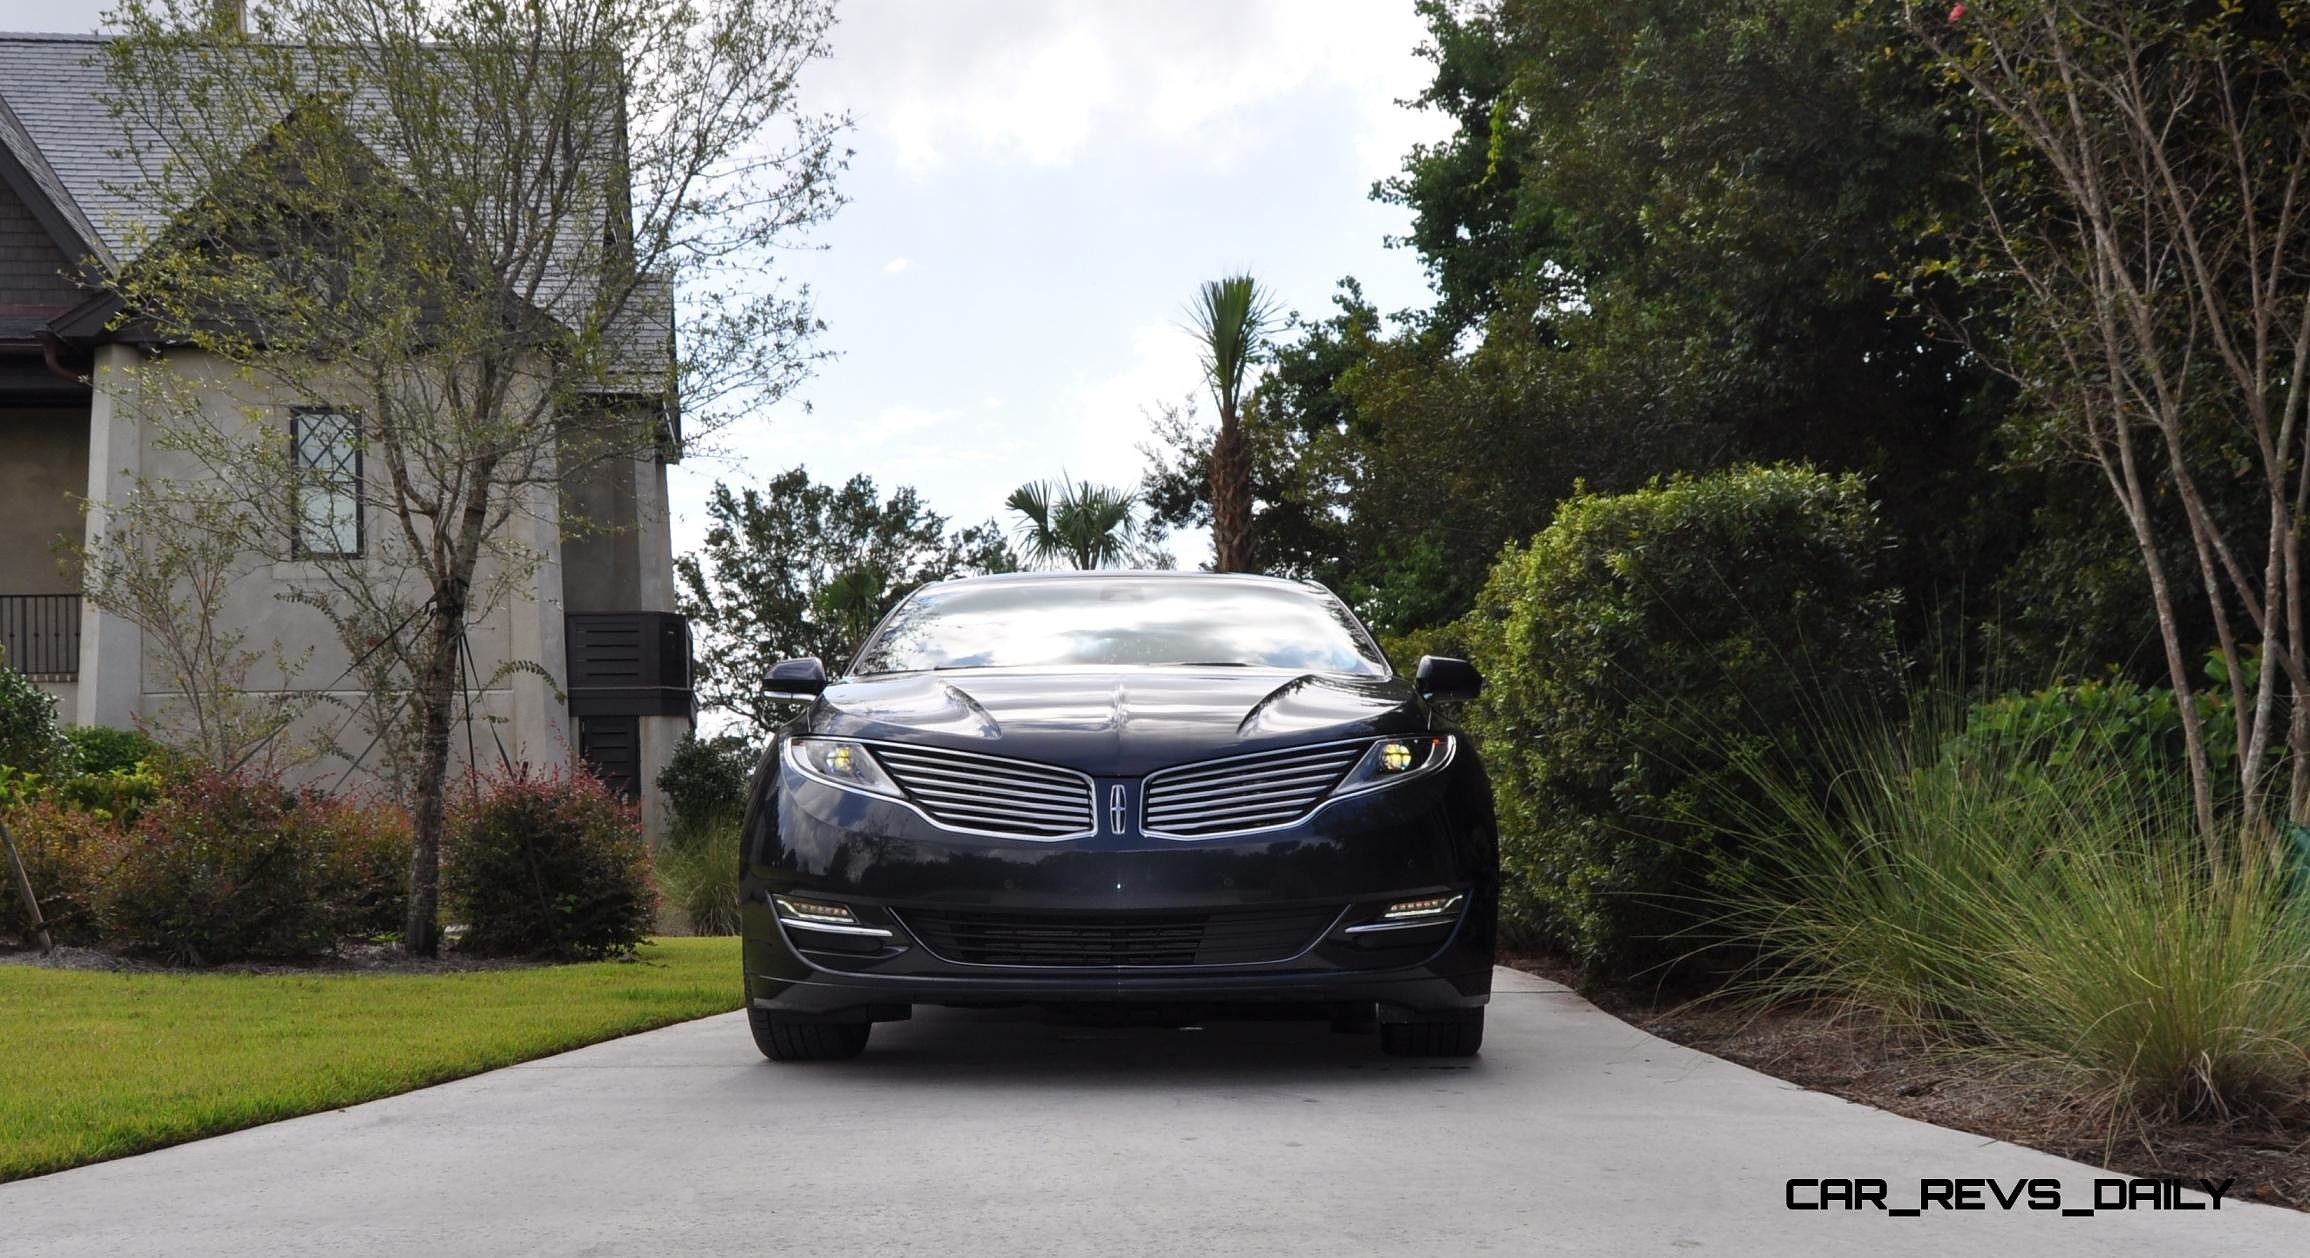 Road Test Review - 2014 Lincoln MKZ 3